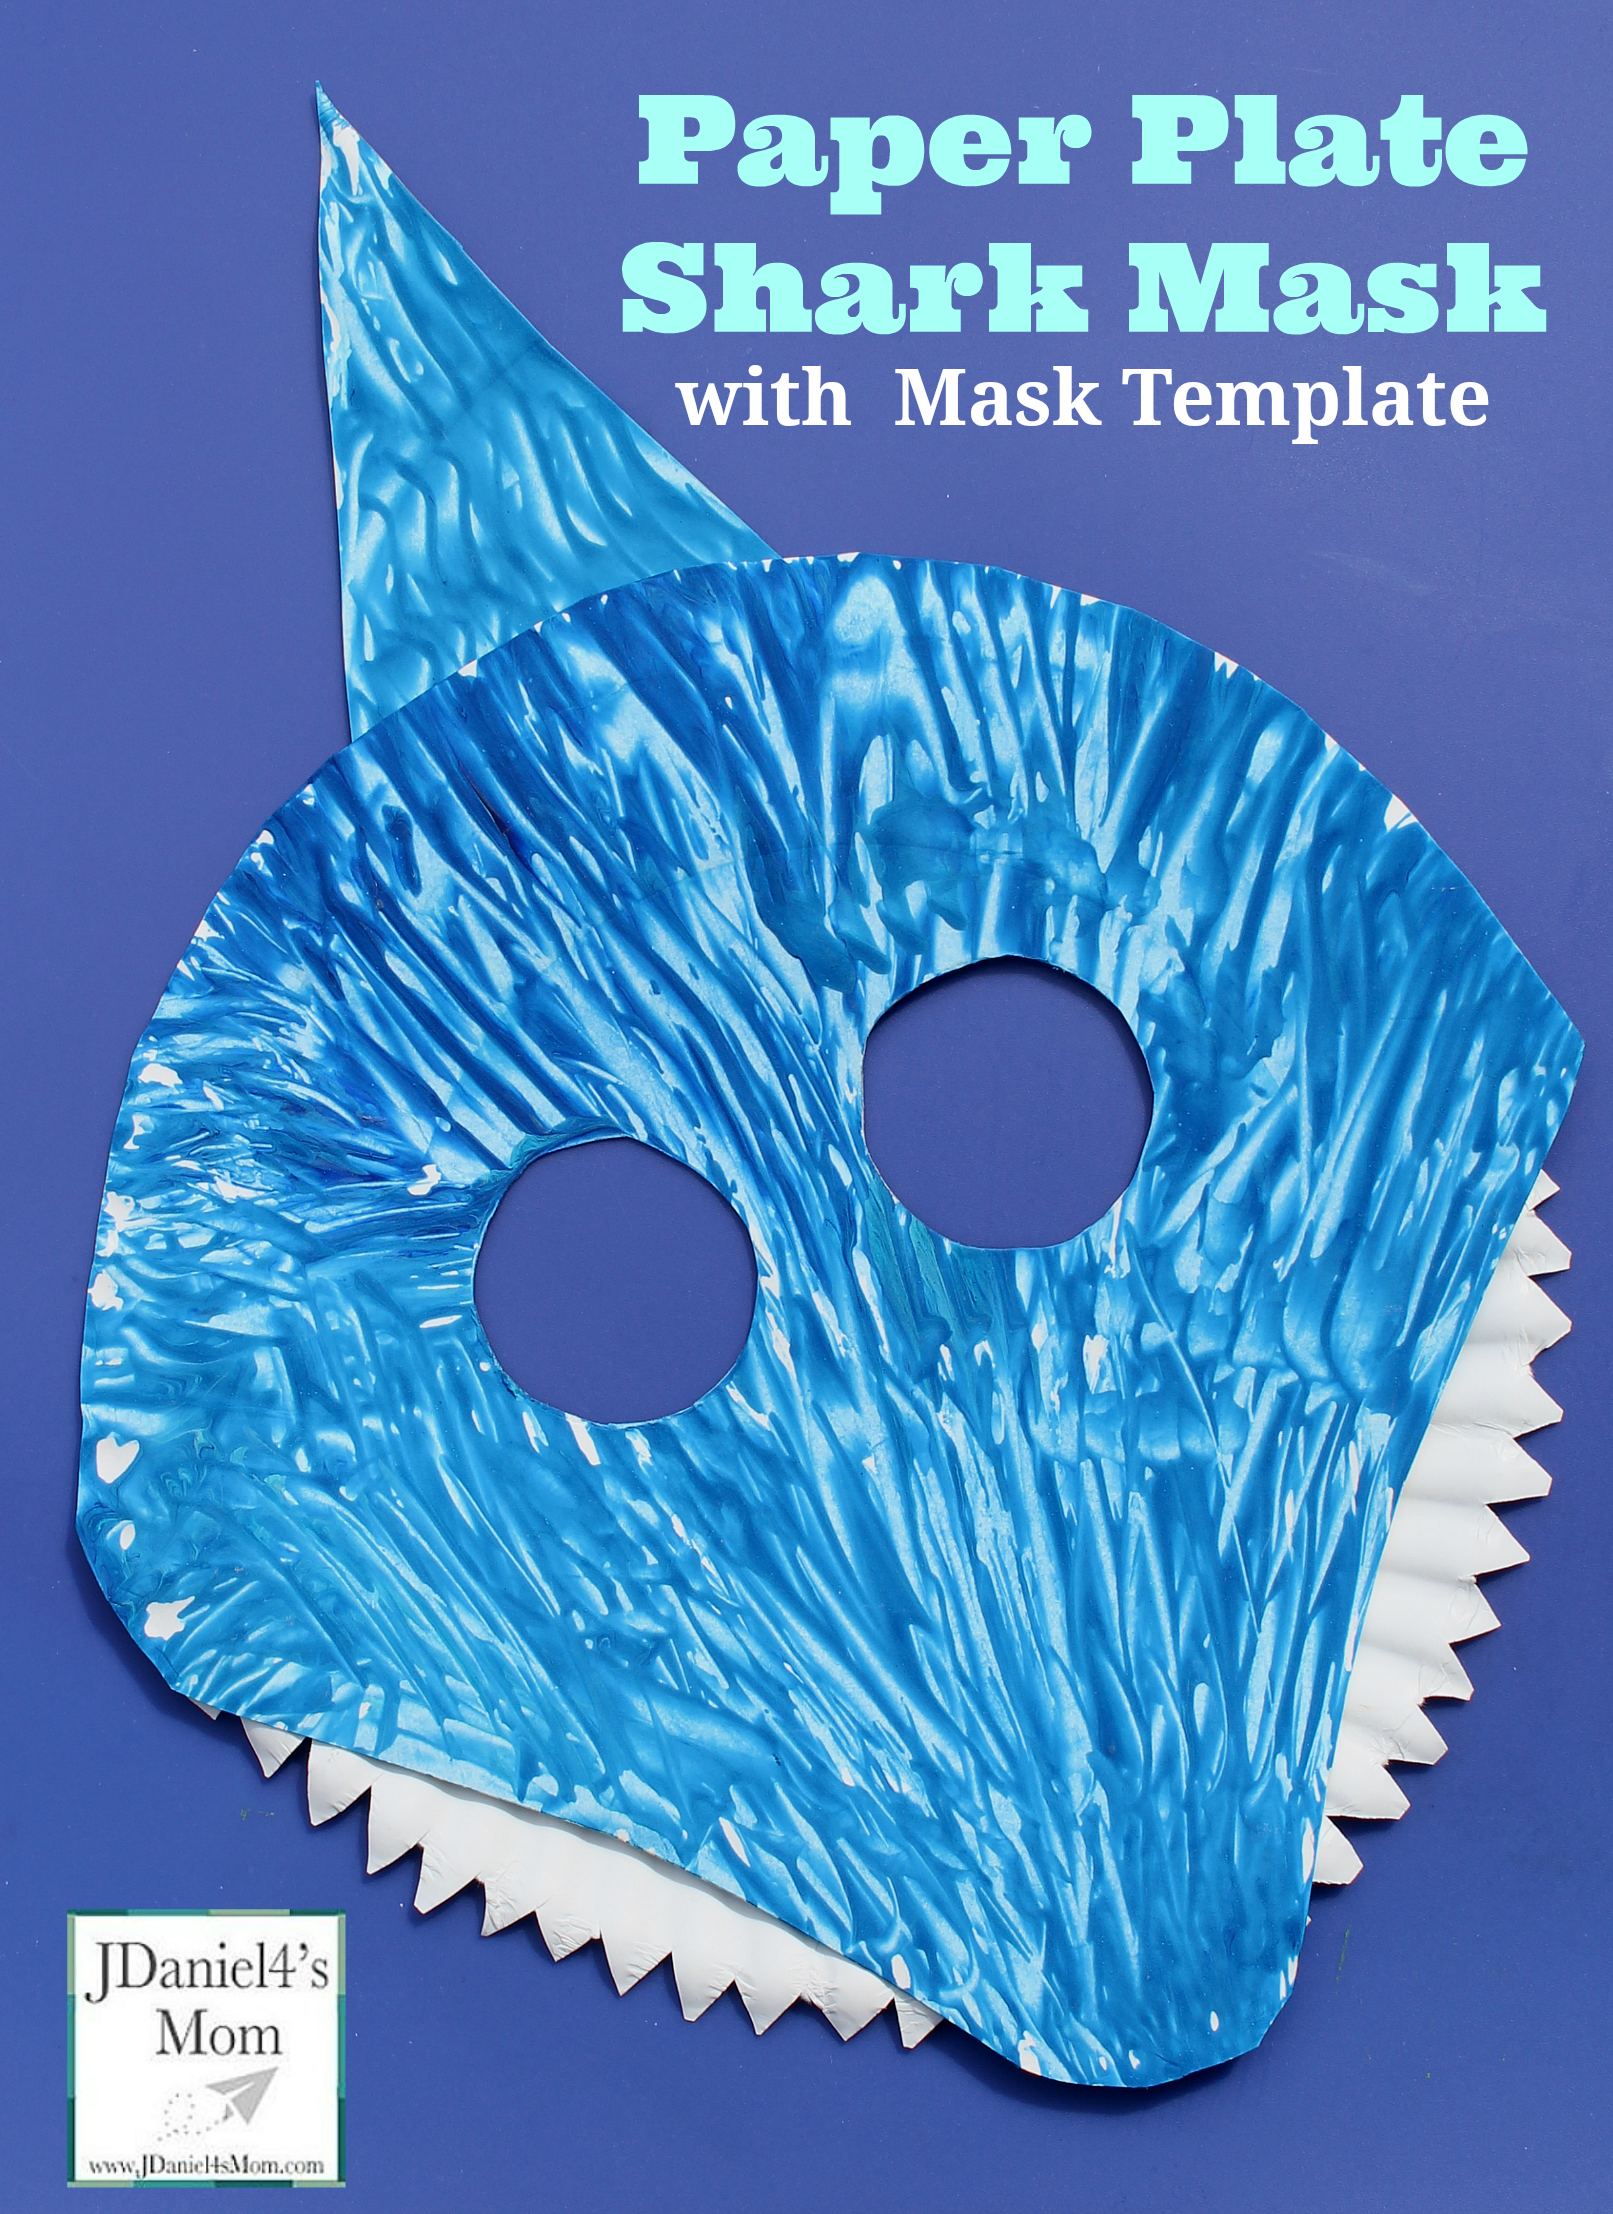 Paper Plate Shark Mask and Mask Template | JDaniel4's Mom (From My